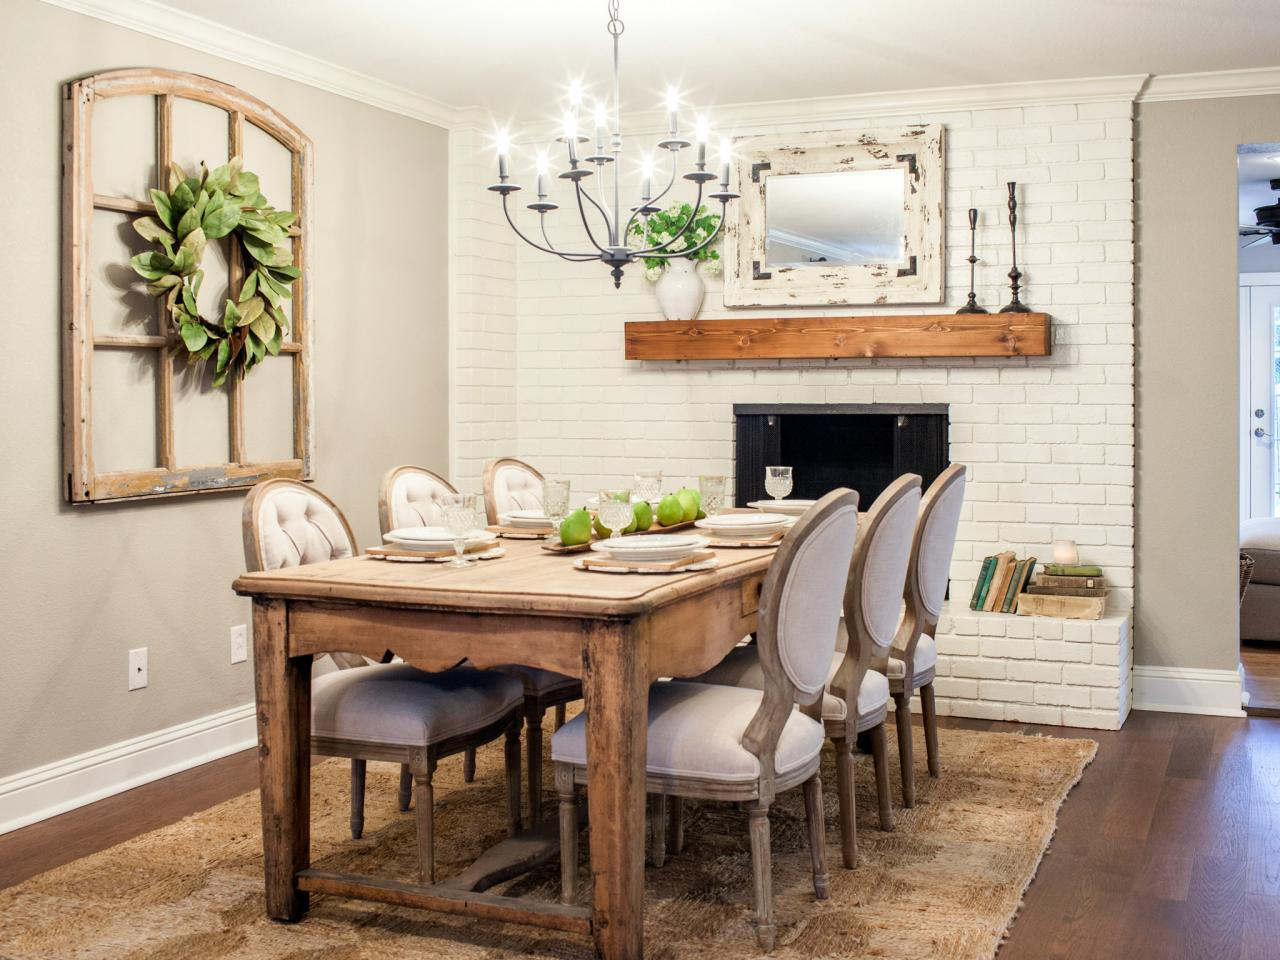 Rooms from fixer upper home interiors